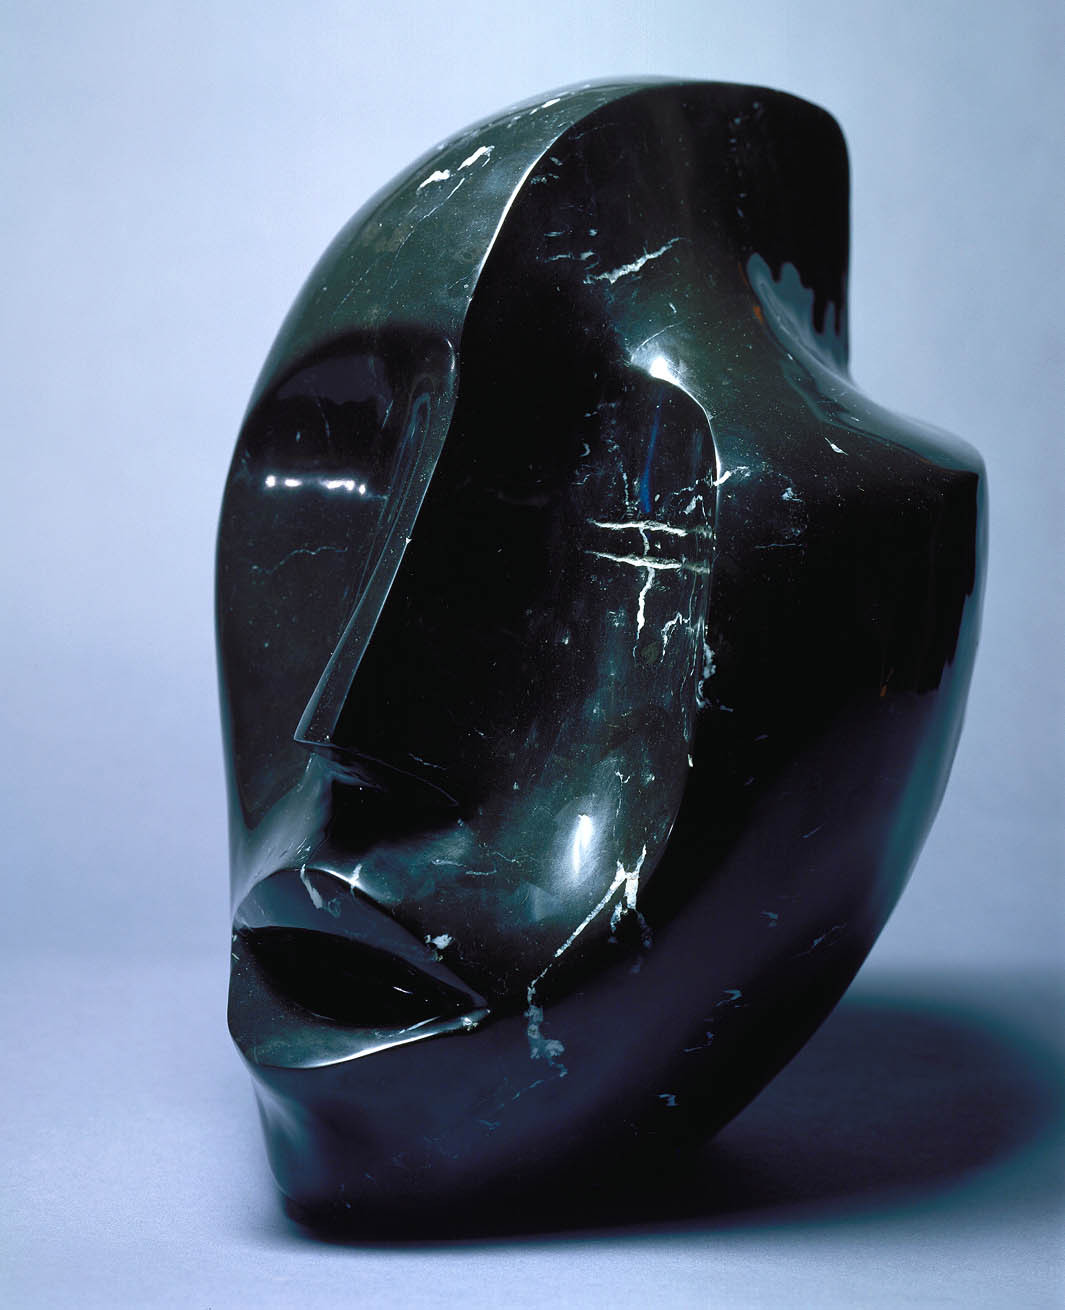 cavetocanvas:  Elizabeth Catlett, Singing Head, 1980